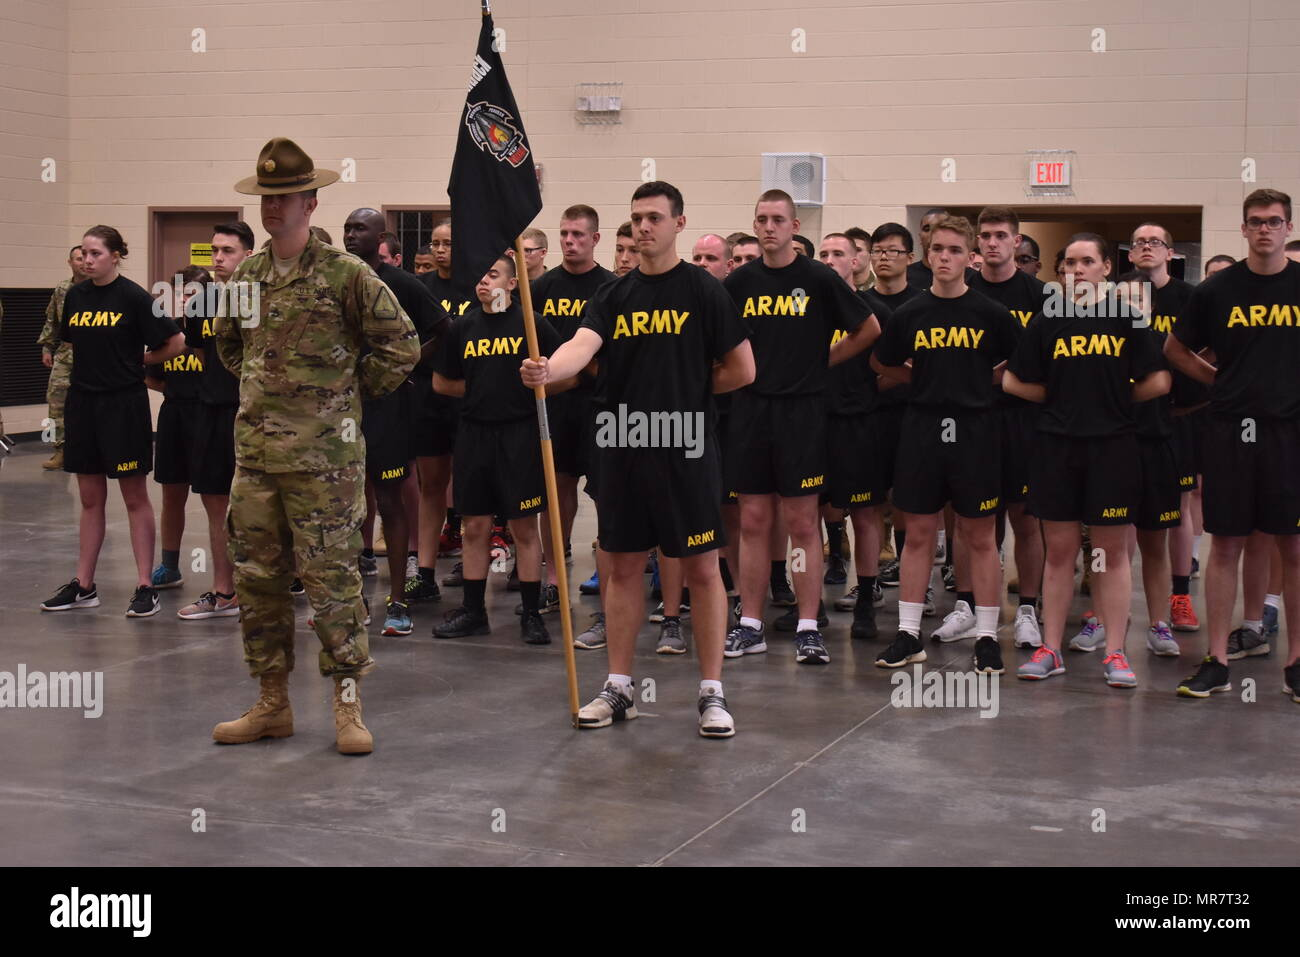 U.S. Army National Guard soldiers from Bravo Company, Recruiting and Retention Command, stand in formation in the Queensbury Armory, Queensbury N.Y., May 21, 2017. Soldiers were waiting for family and friends to arrive for the Recruit Sustainment Program graduation and Battle Handoff ceremony. (U.S. Army National Guard photo by Pfc. Andrew Valenza) - Stock Image